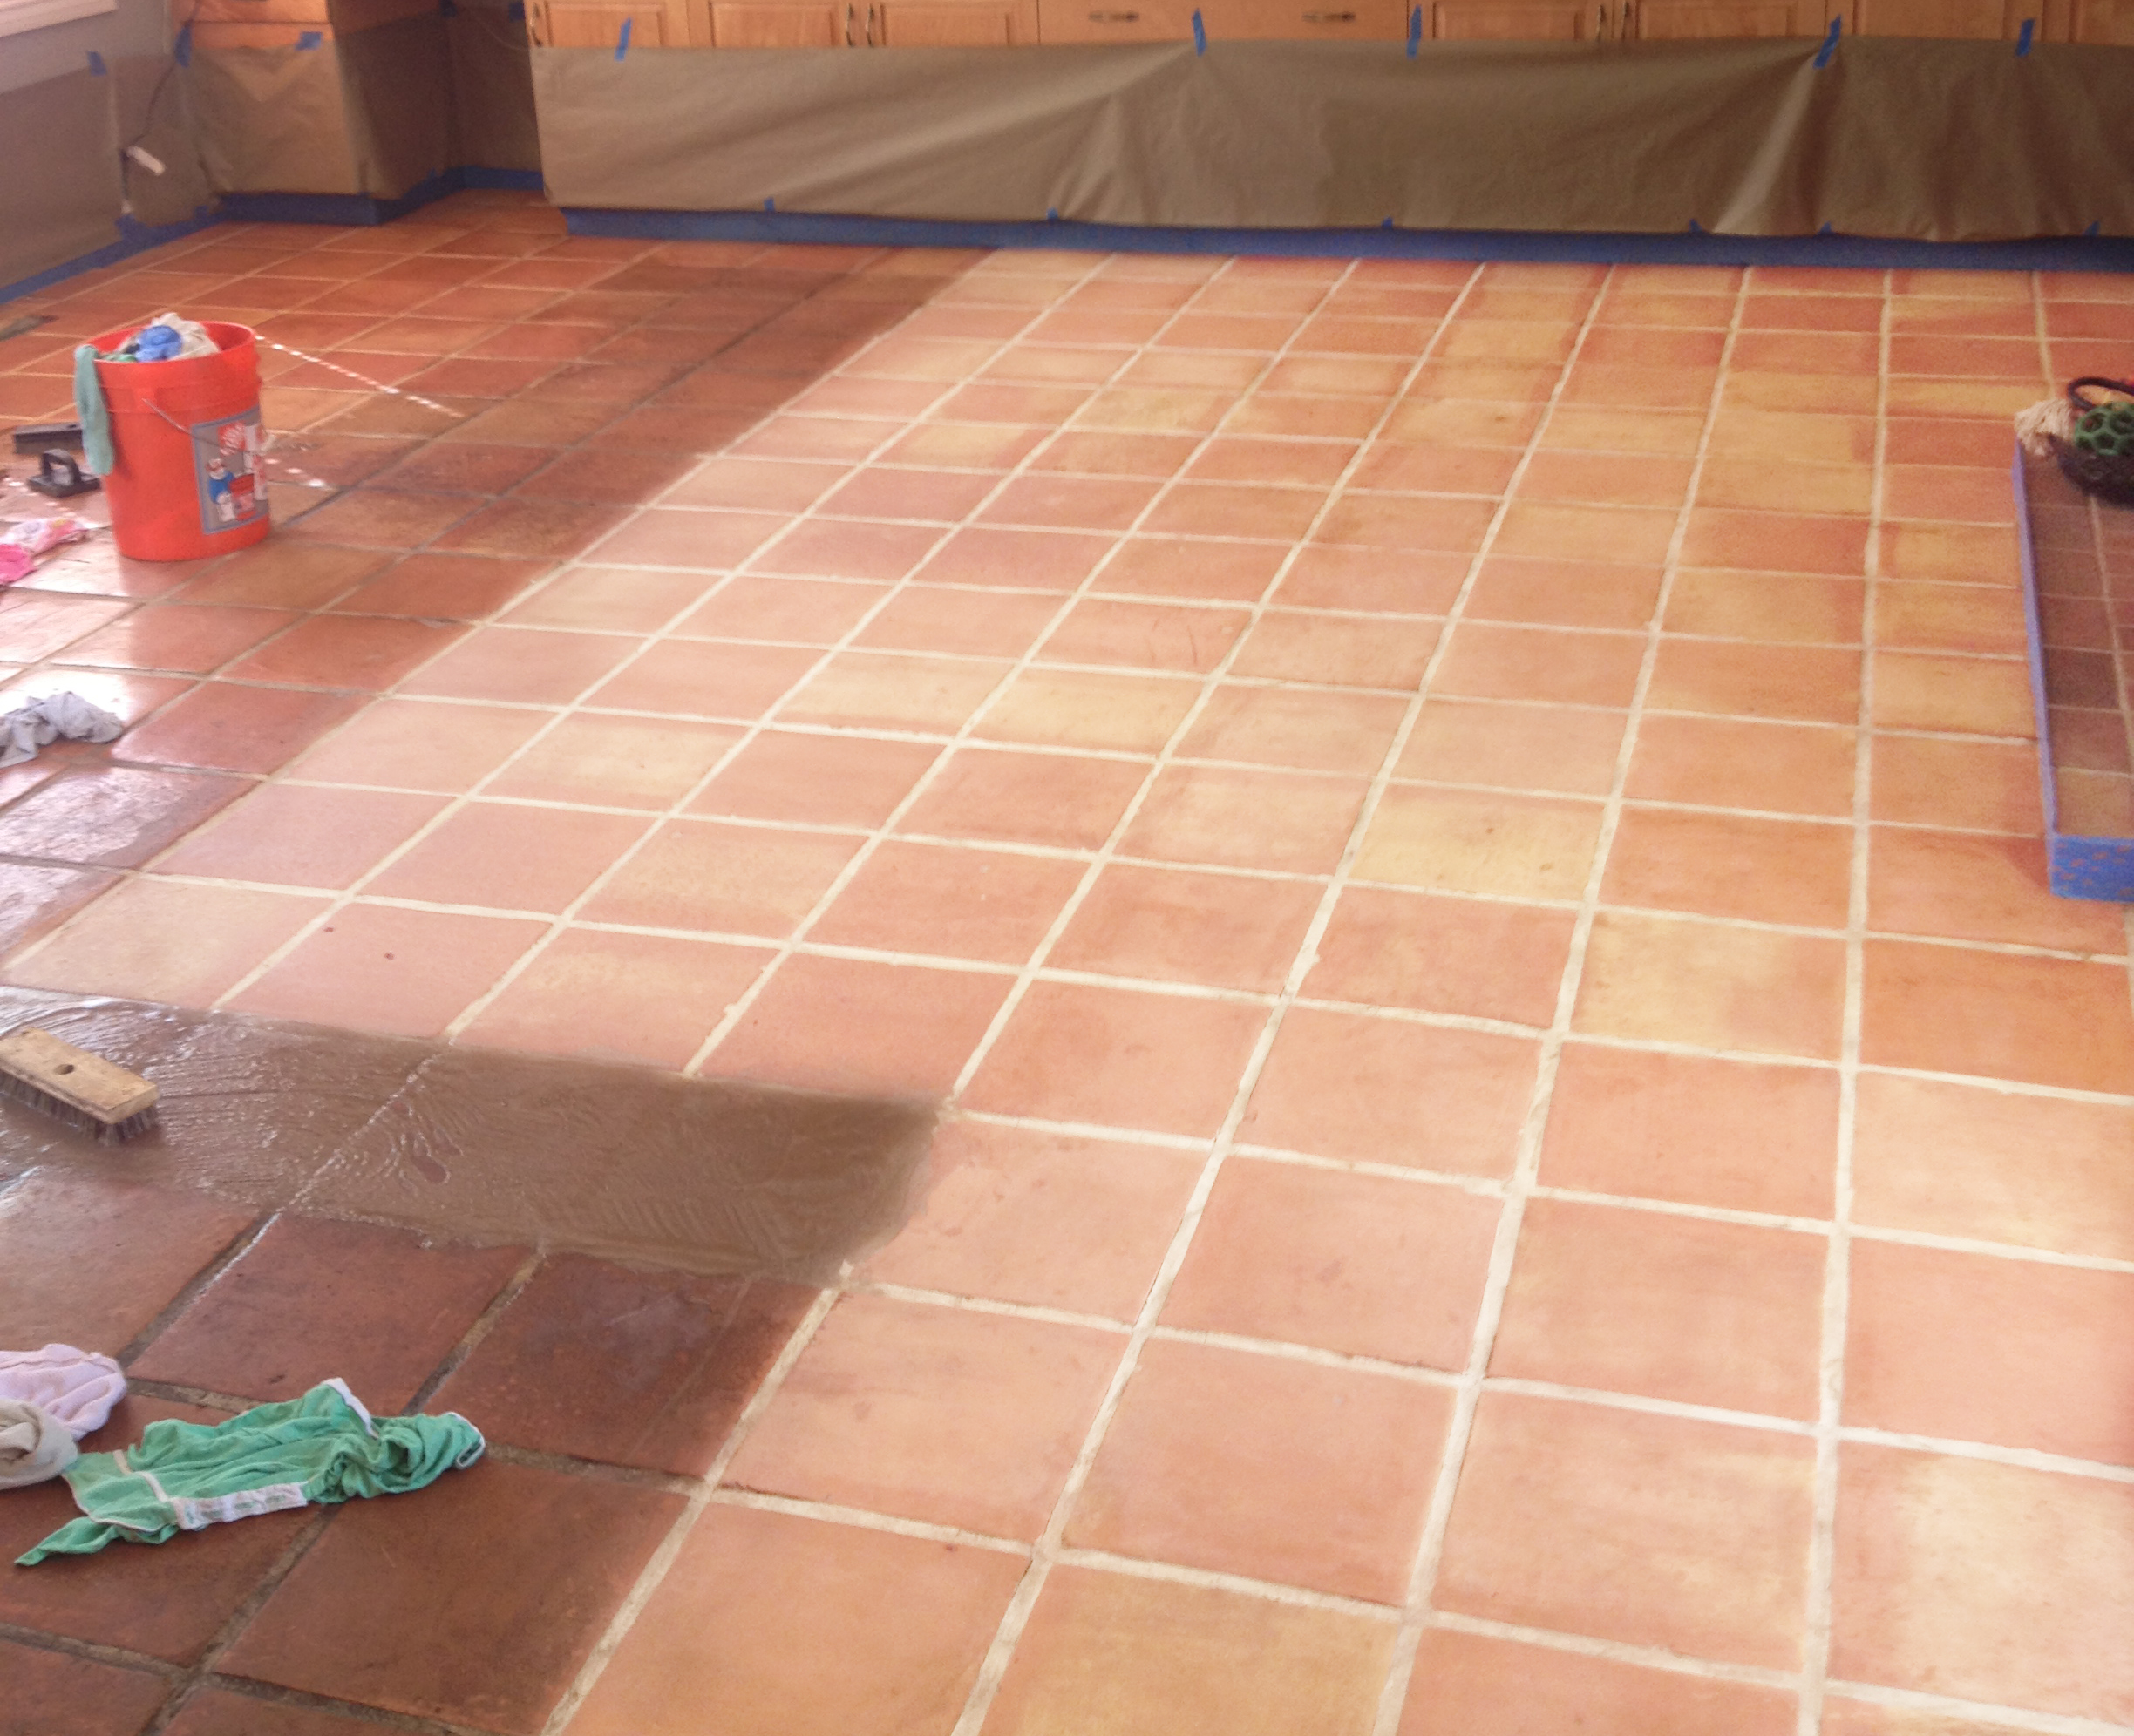 Seal systems tile grout stone brick stripping mexican pavers dailygadgetfo Choice Image